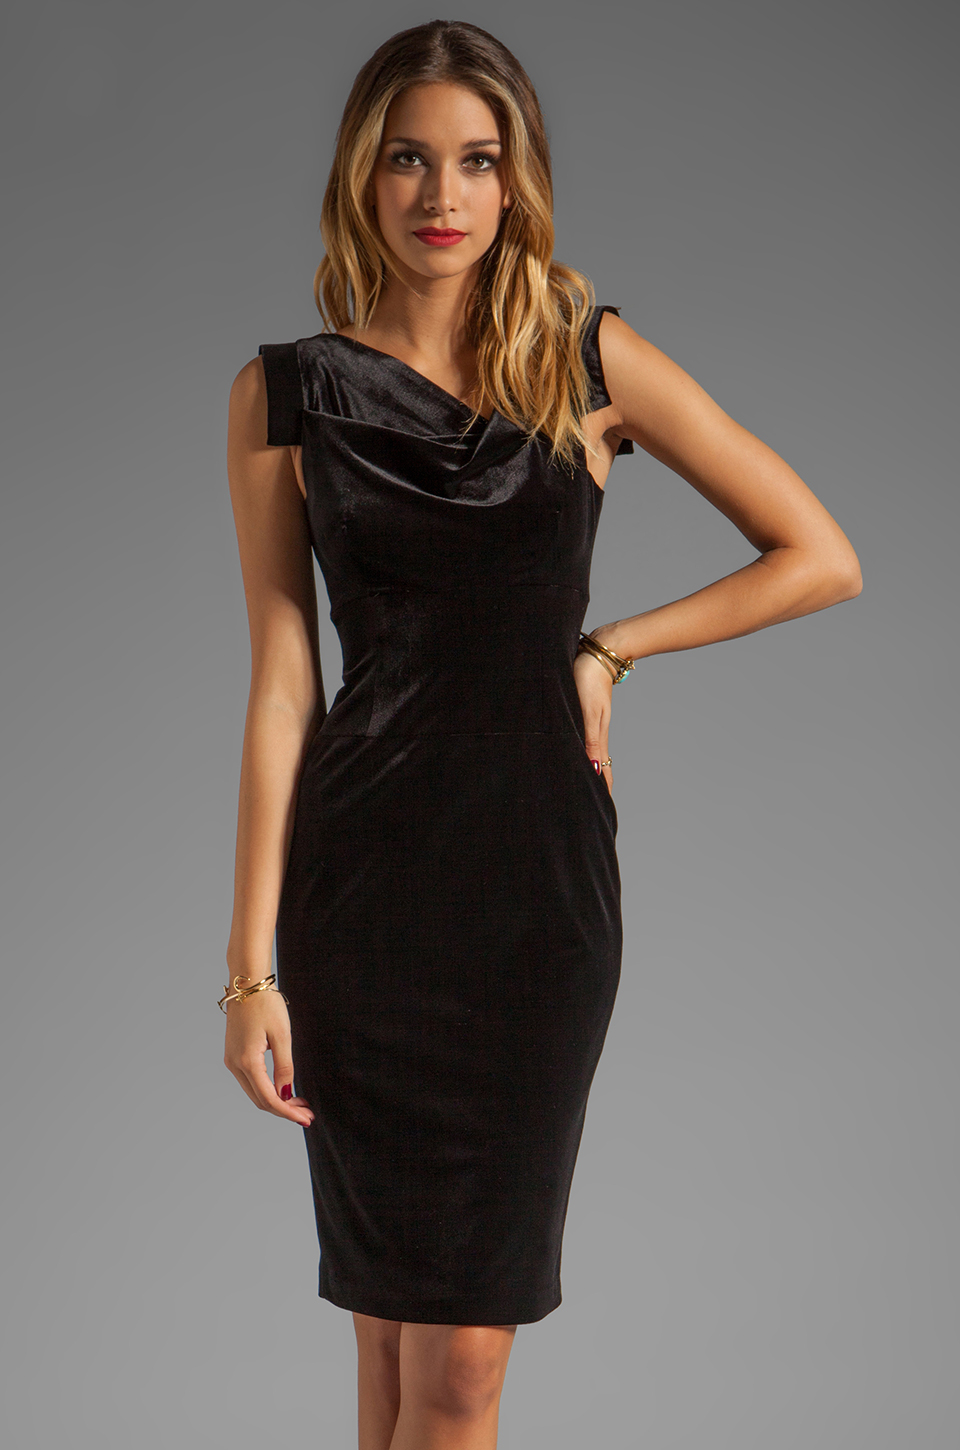 Black Halo Jackie O Dress In Black Velvet In Black Lyst